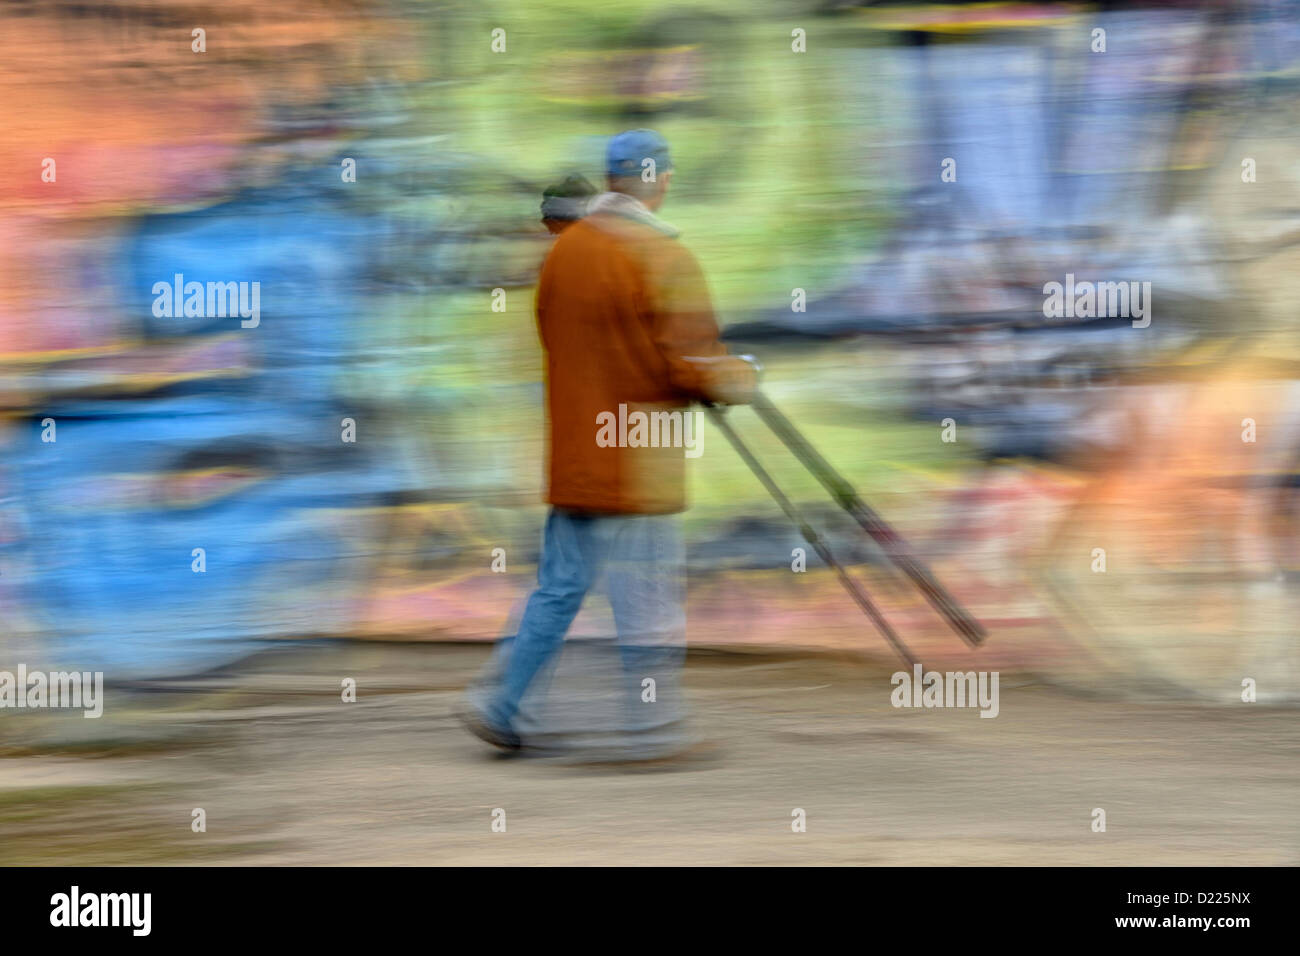 Photographer and wall mural, Vernon, BC, Canada - Stock Image